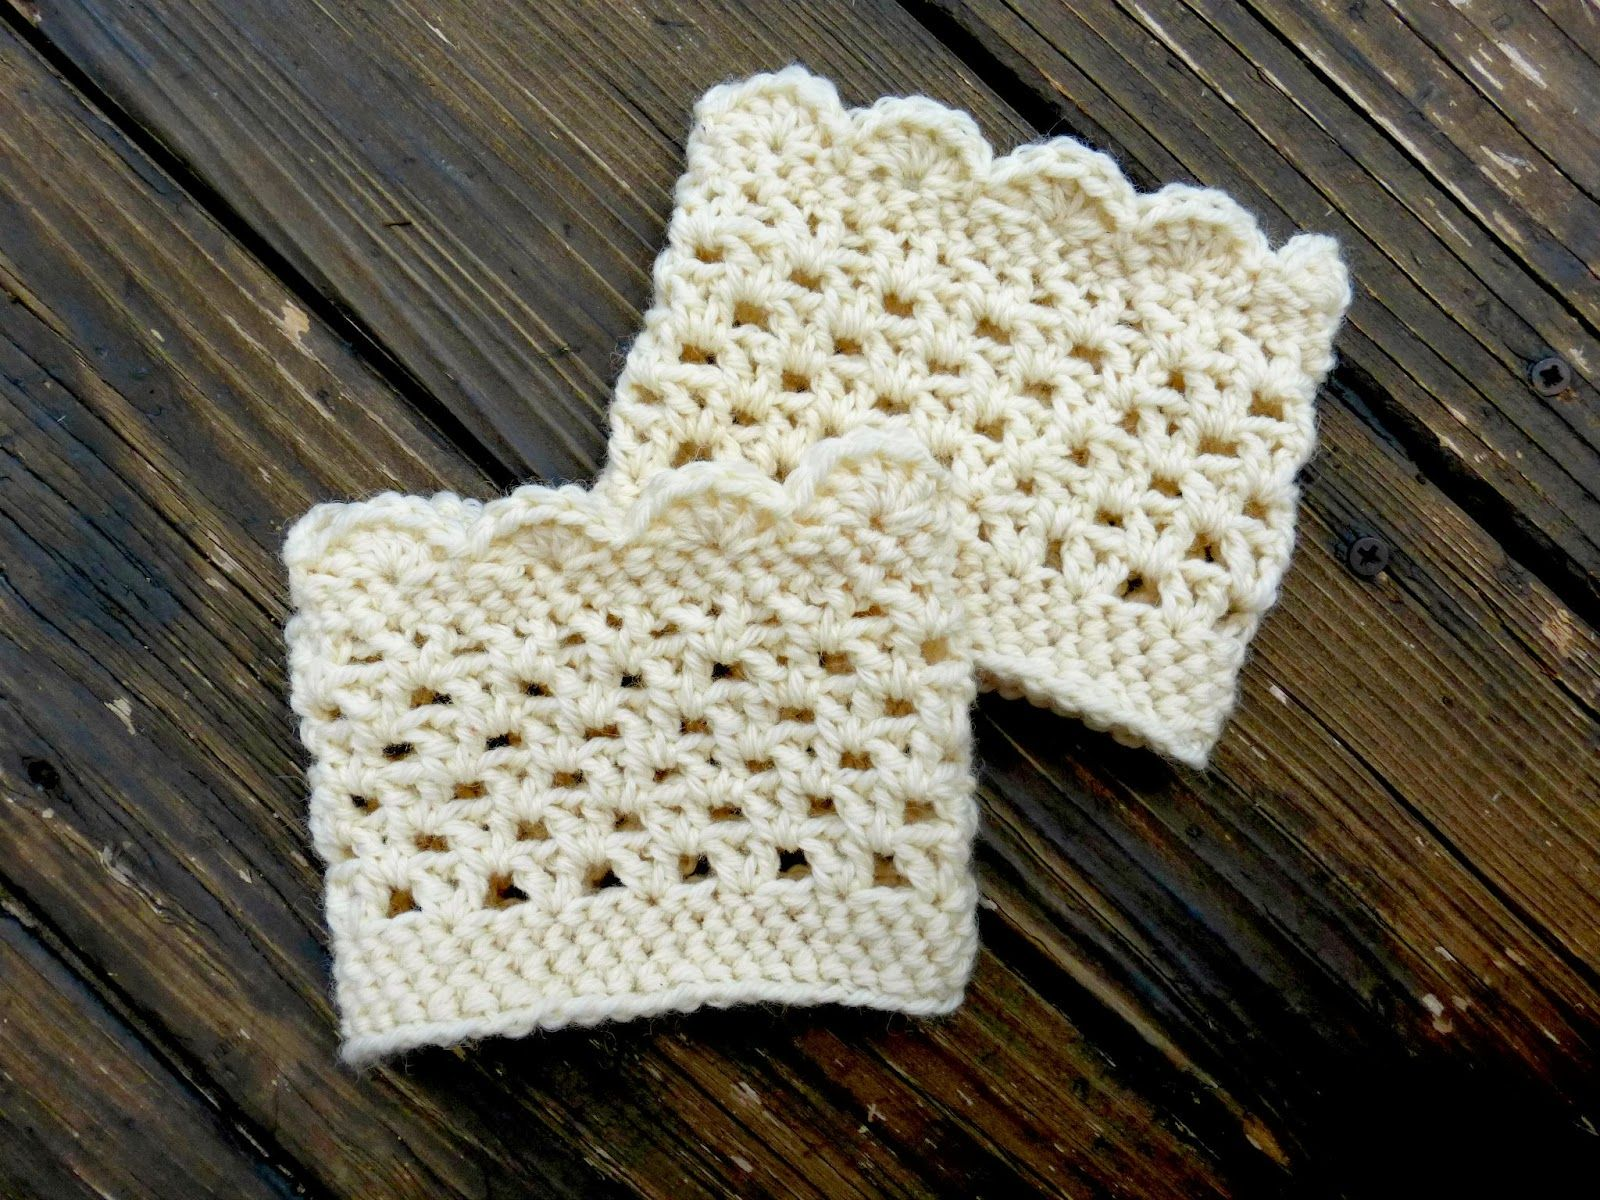 crochet boot cuffs   ... Bliss Squared: Lacy Scalloped Crochet Boot ...